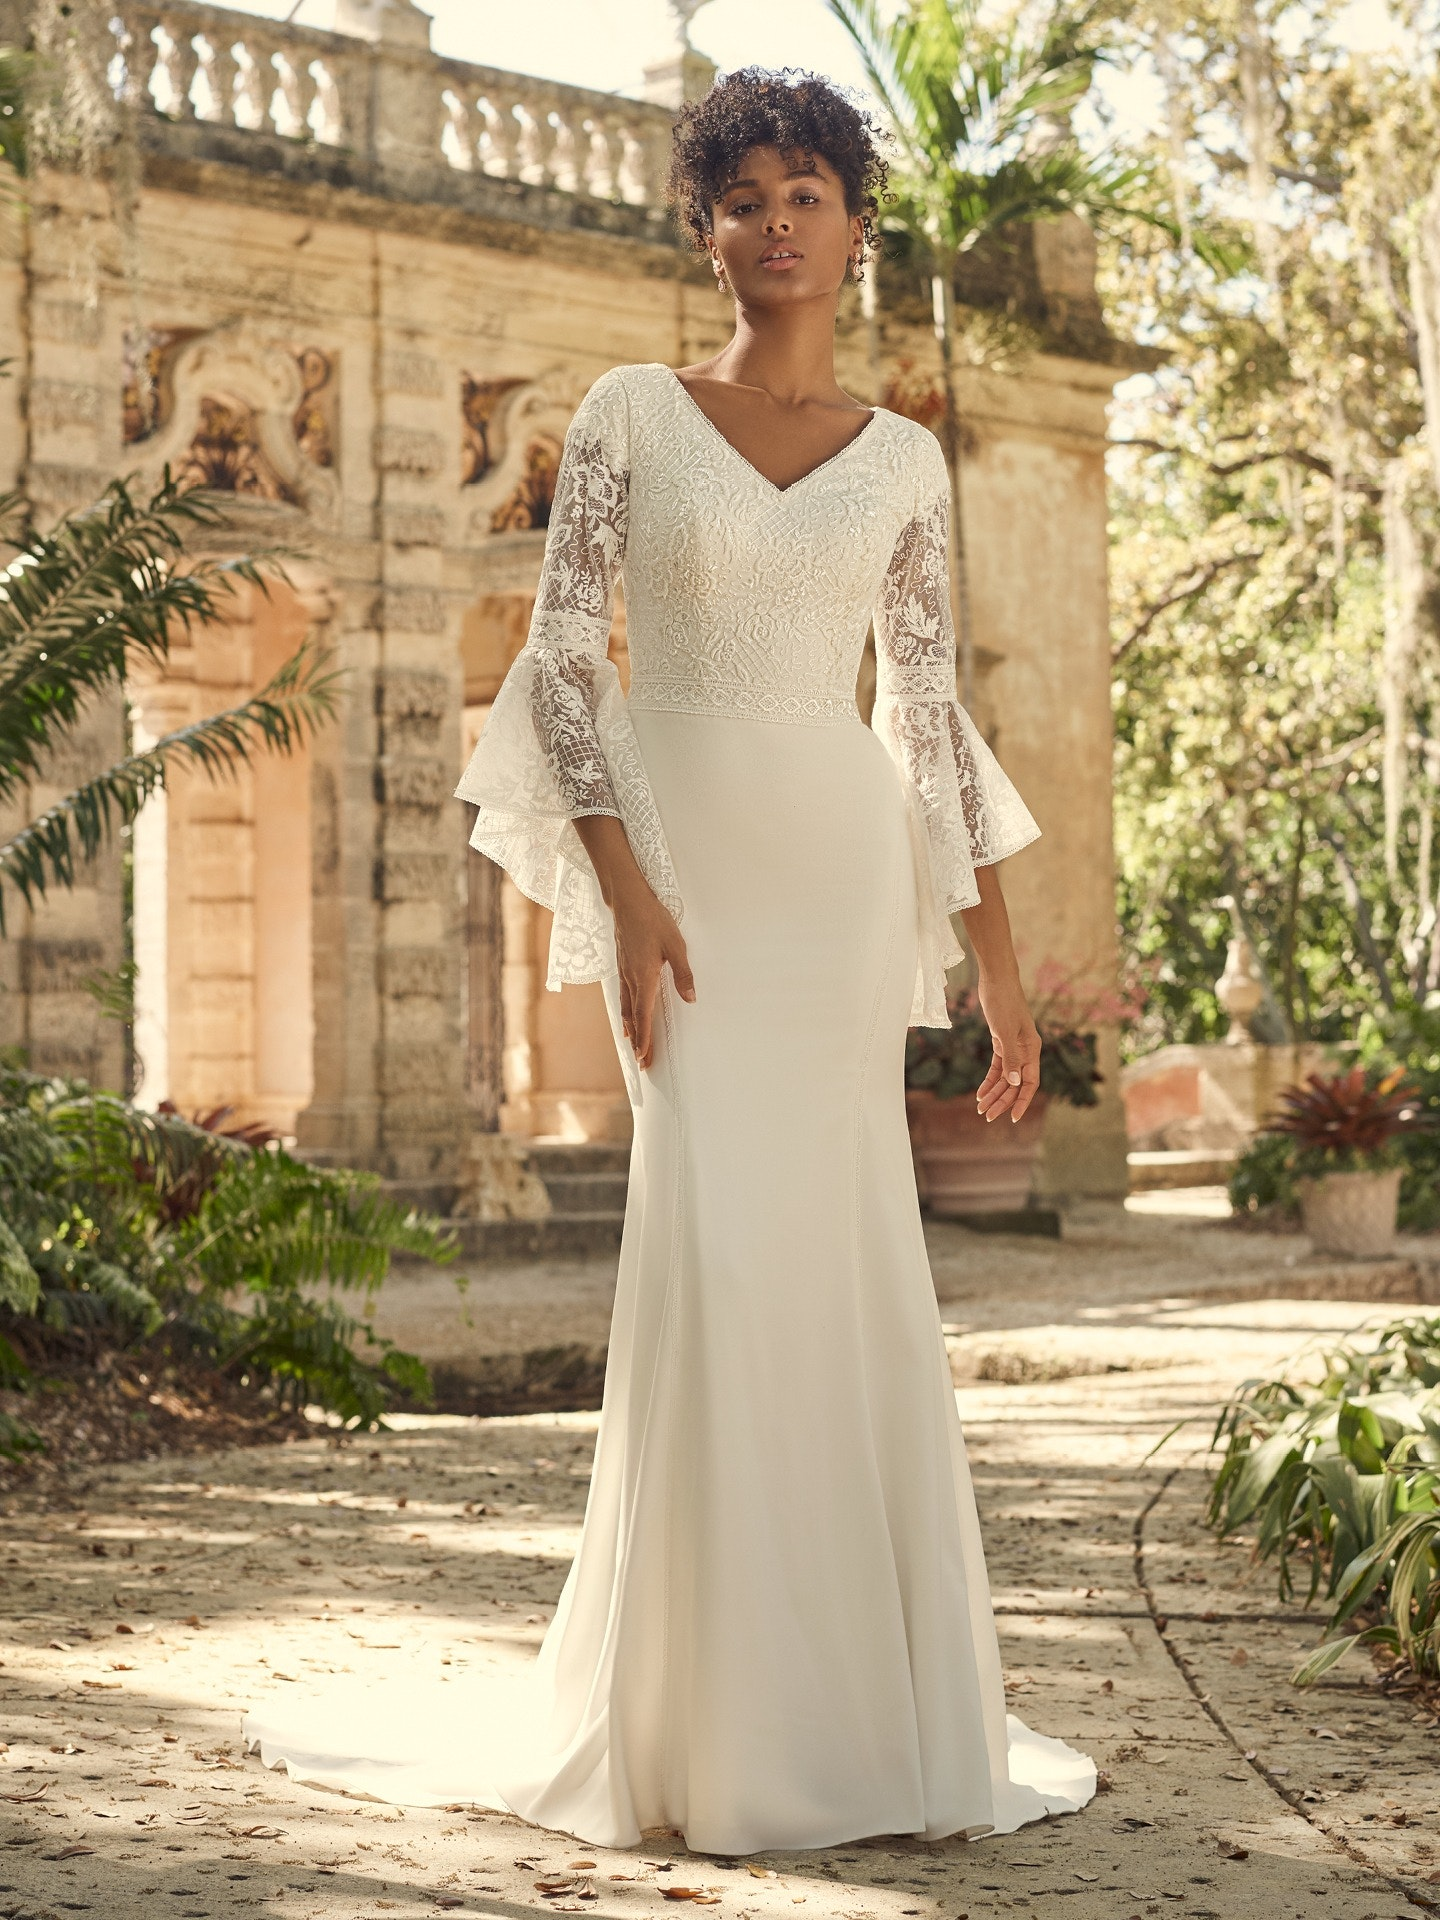 long sleeve bridal gowns,long sleeve wedding gowns,wedding dresses with sleeves,